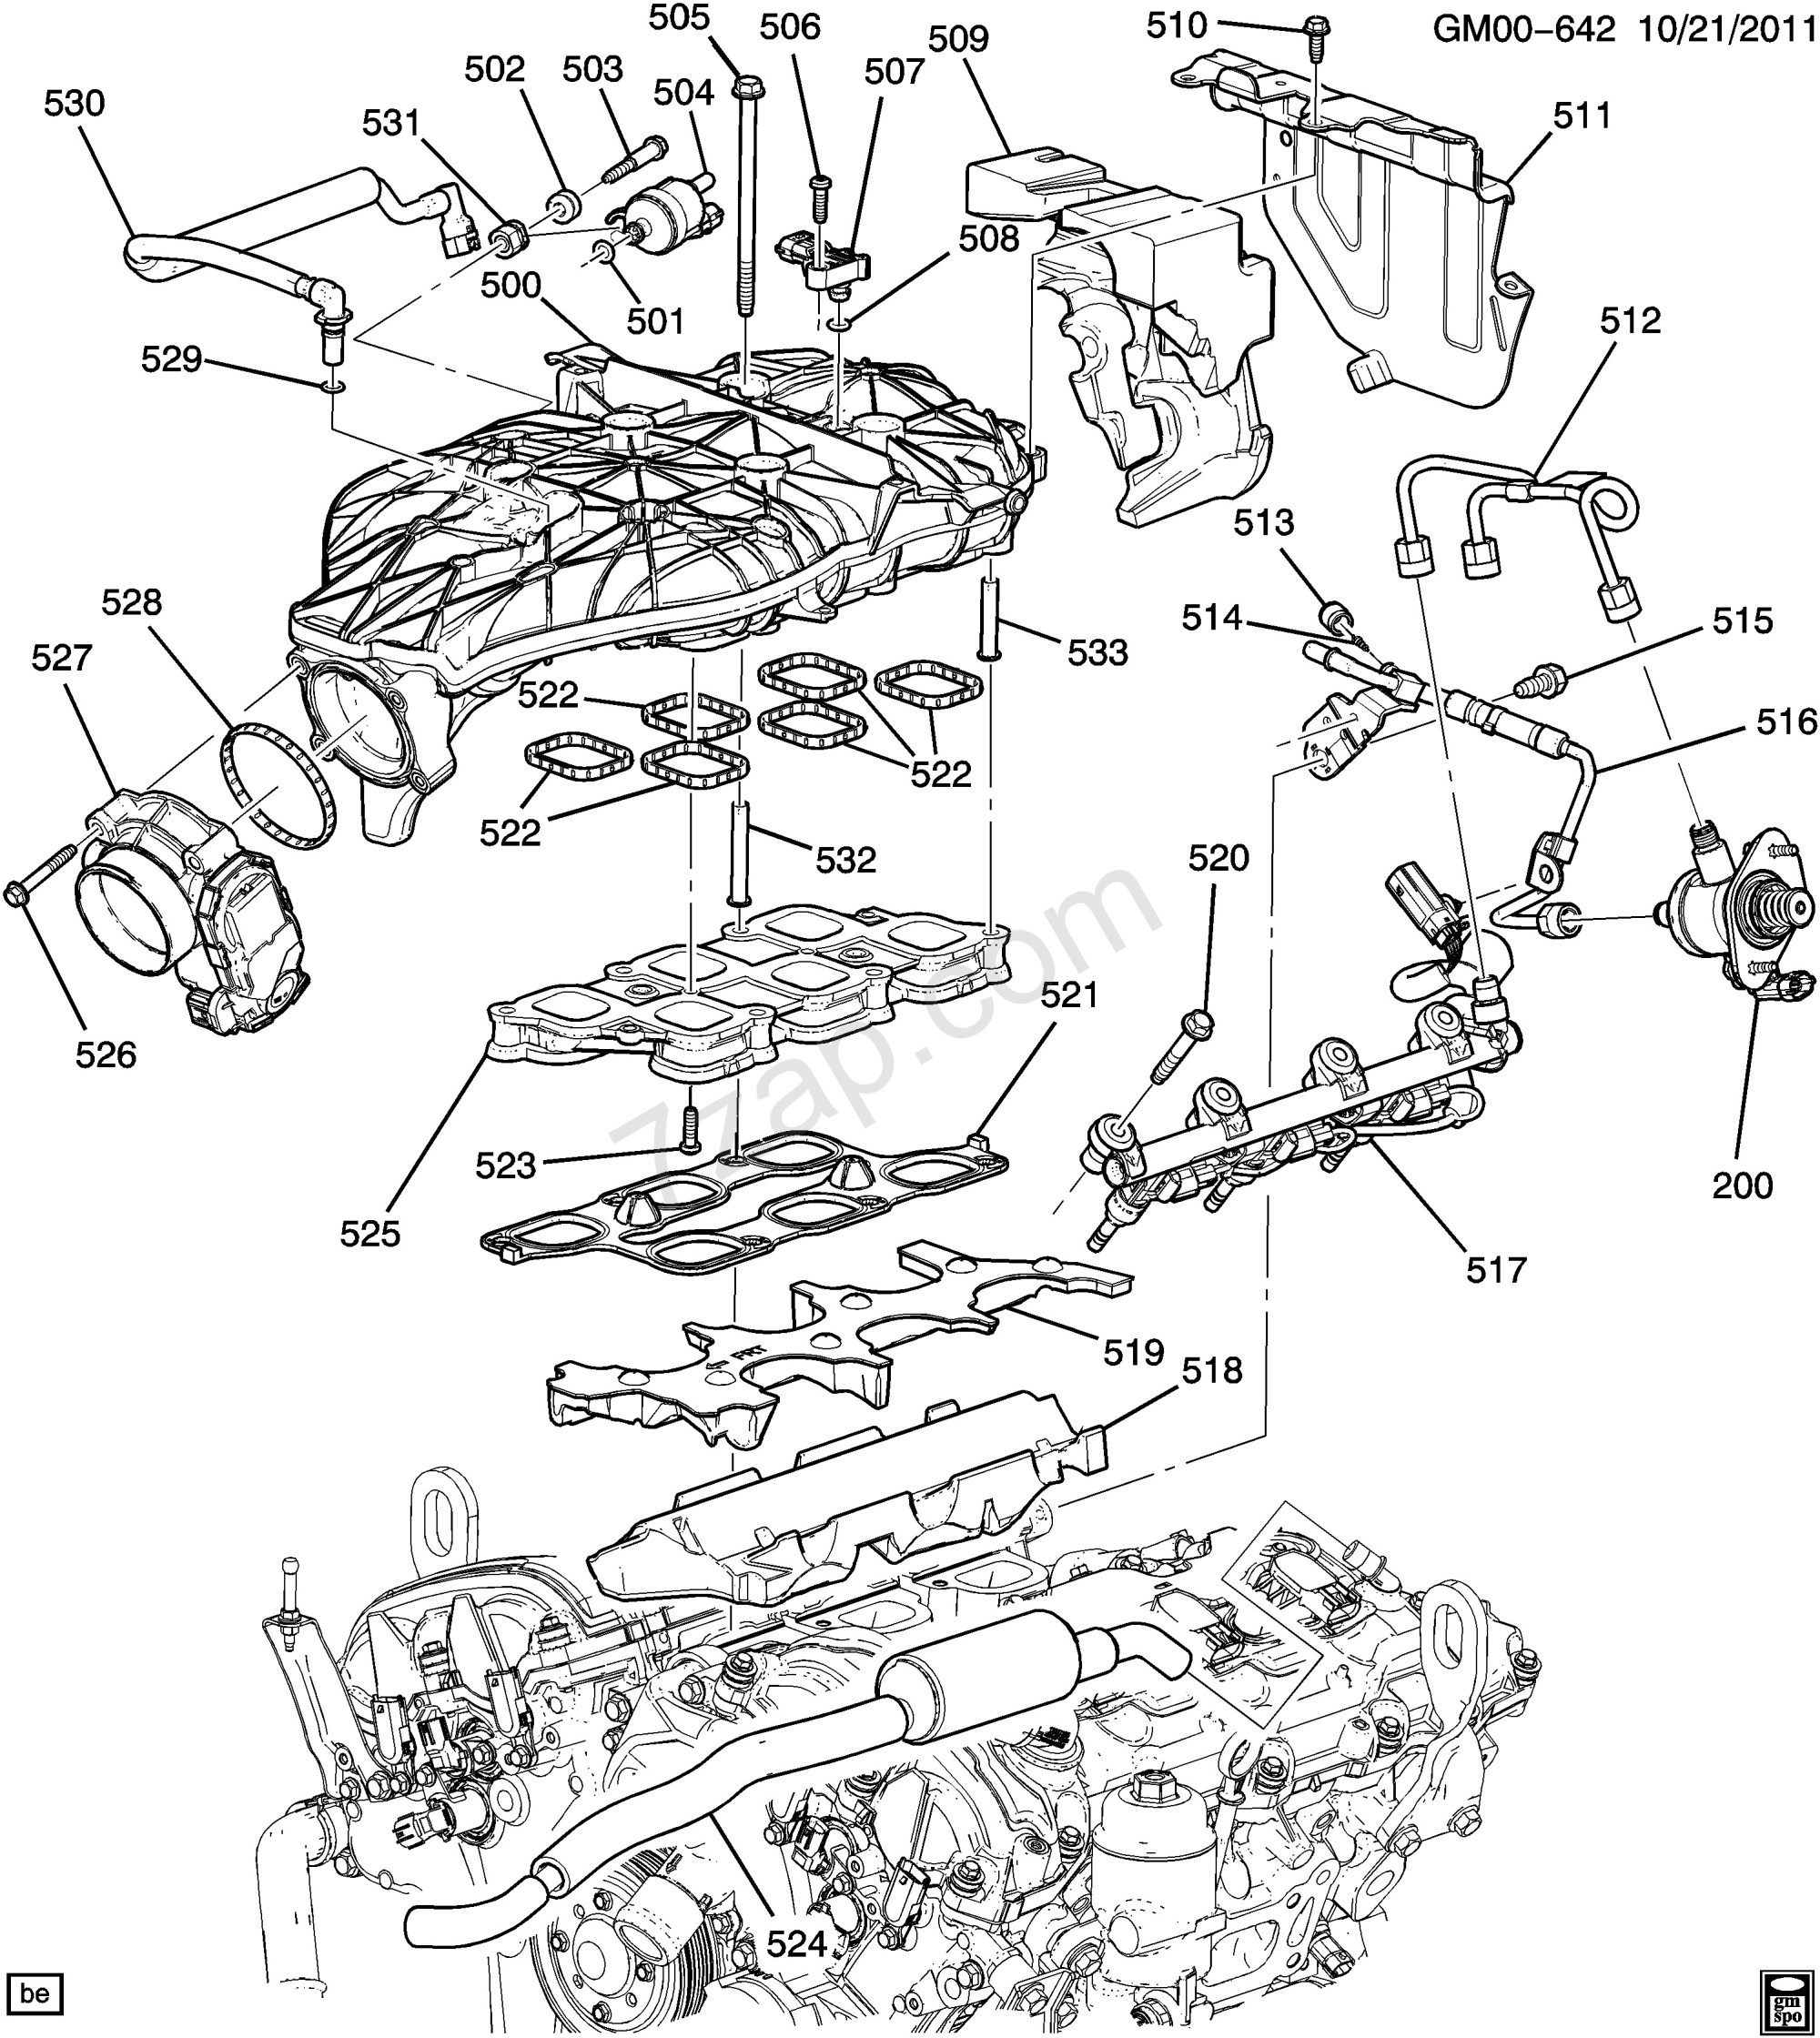 hight resolution of buick 3 4 engine diagram wiring diagram splitchevrolet v6 engine diagram wiring diagrams terms buick 3